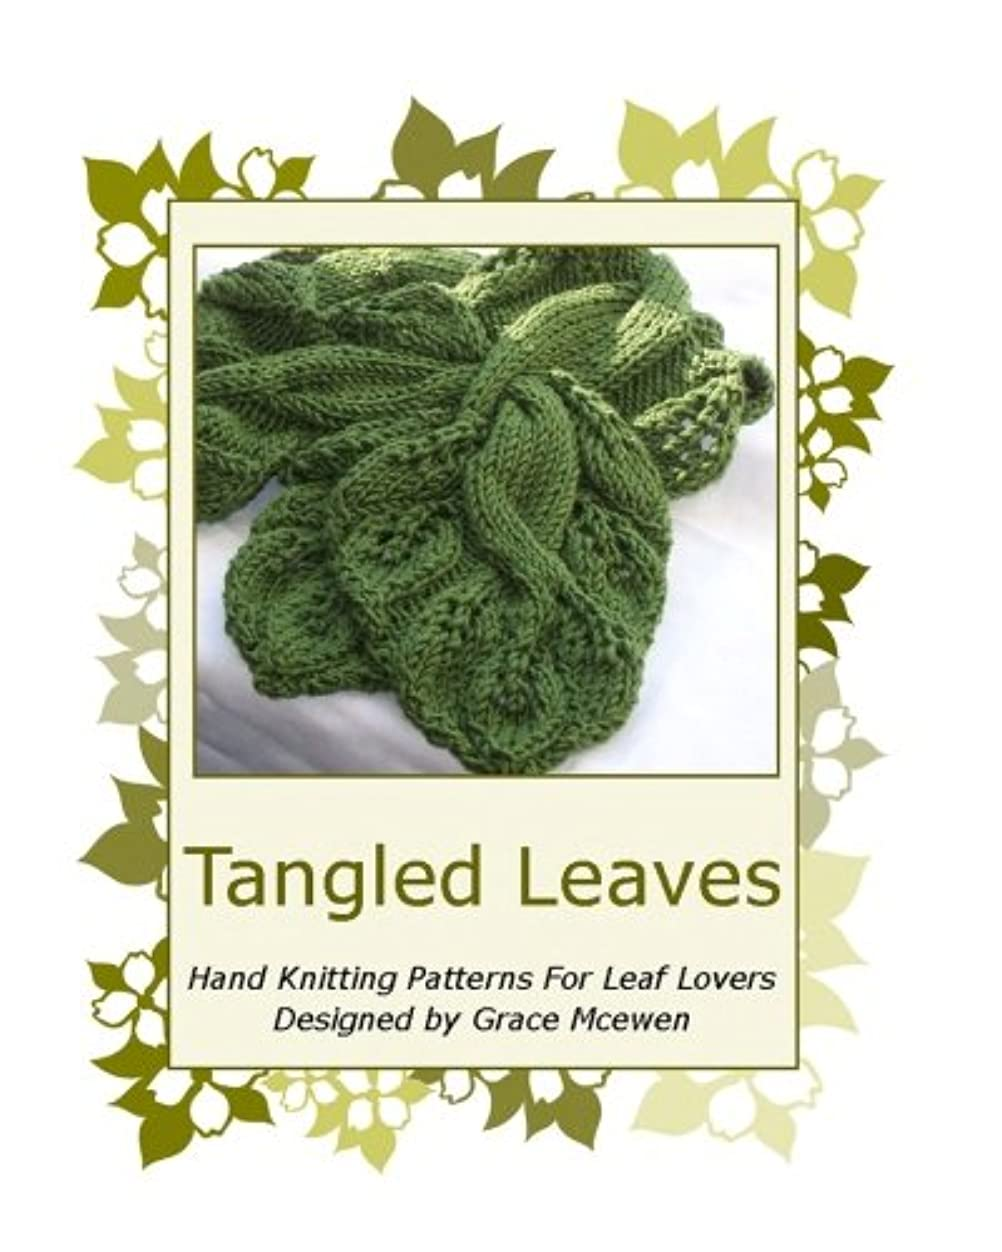 Tangled Leaves: Hand Knitting Patterns For Leaf Lovers wpuv909056032